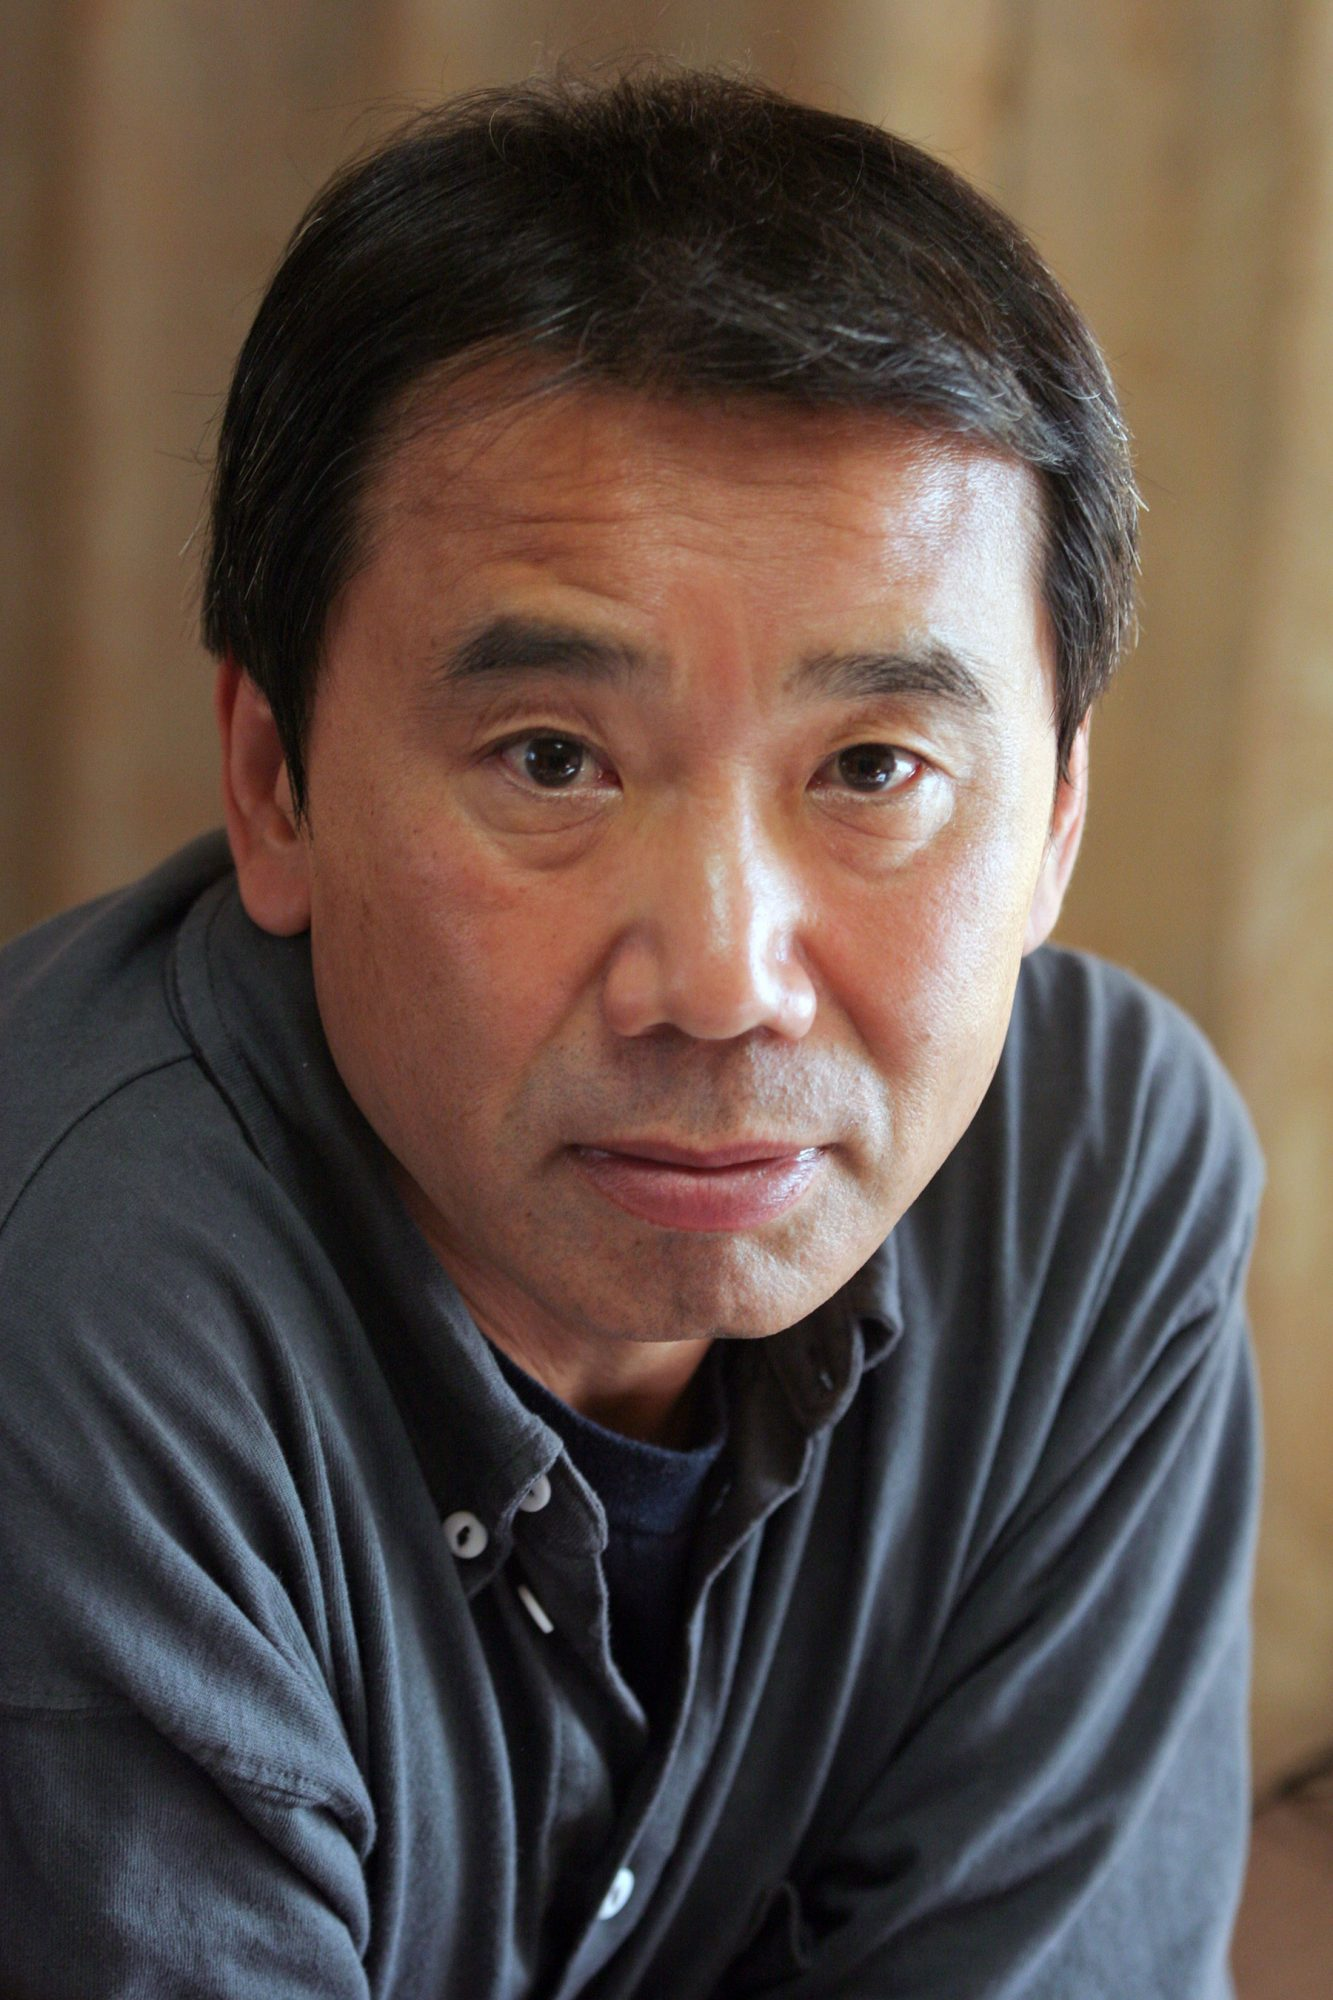 GALLERY: Playboy authorsHaruki Murakami